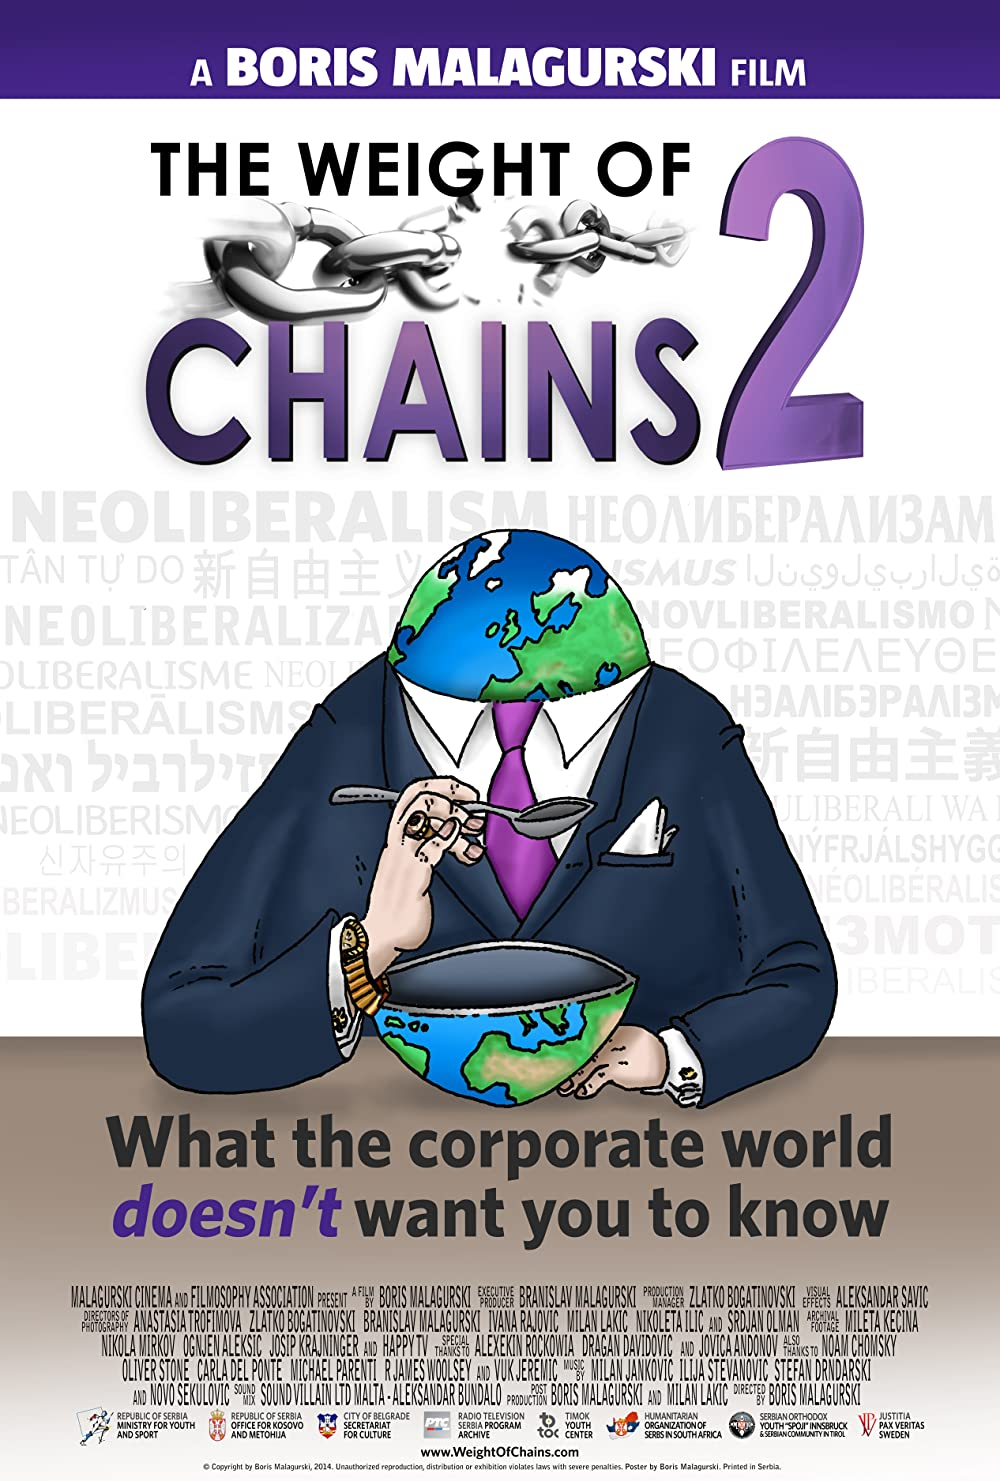 Watch The Weight of Chains 2 Online